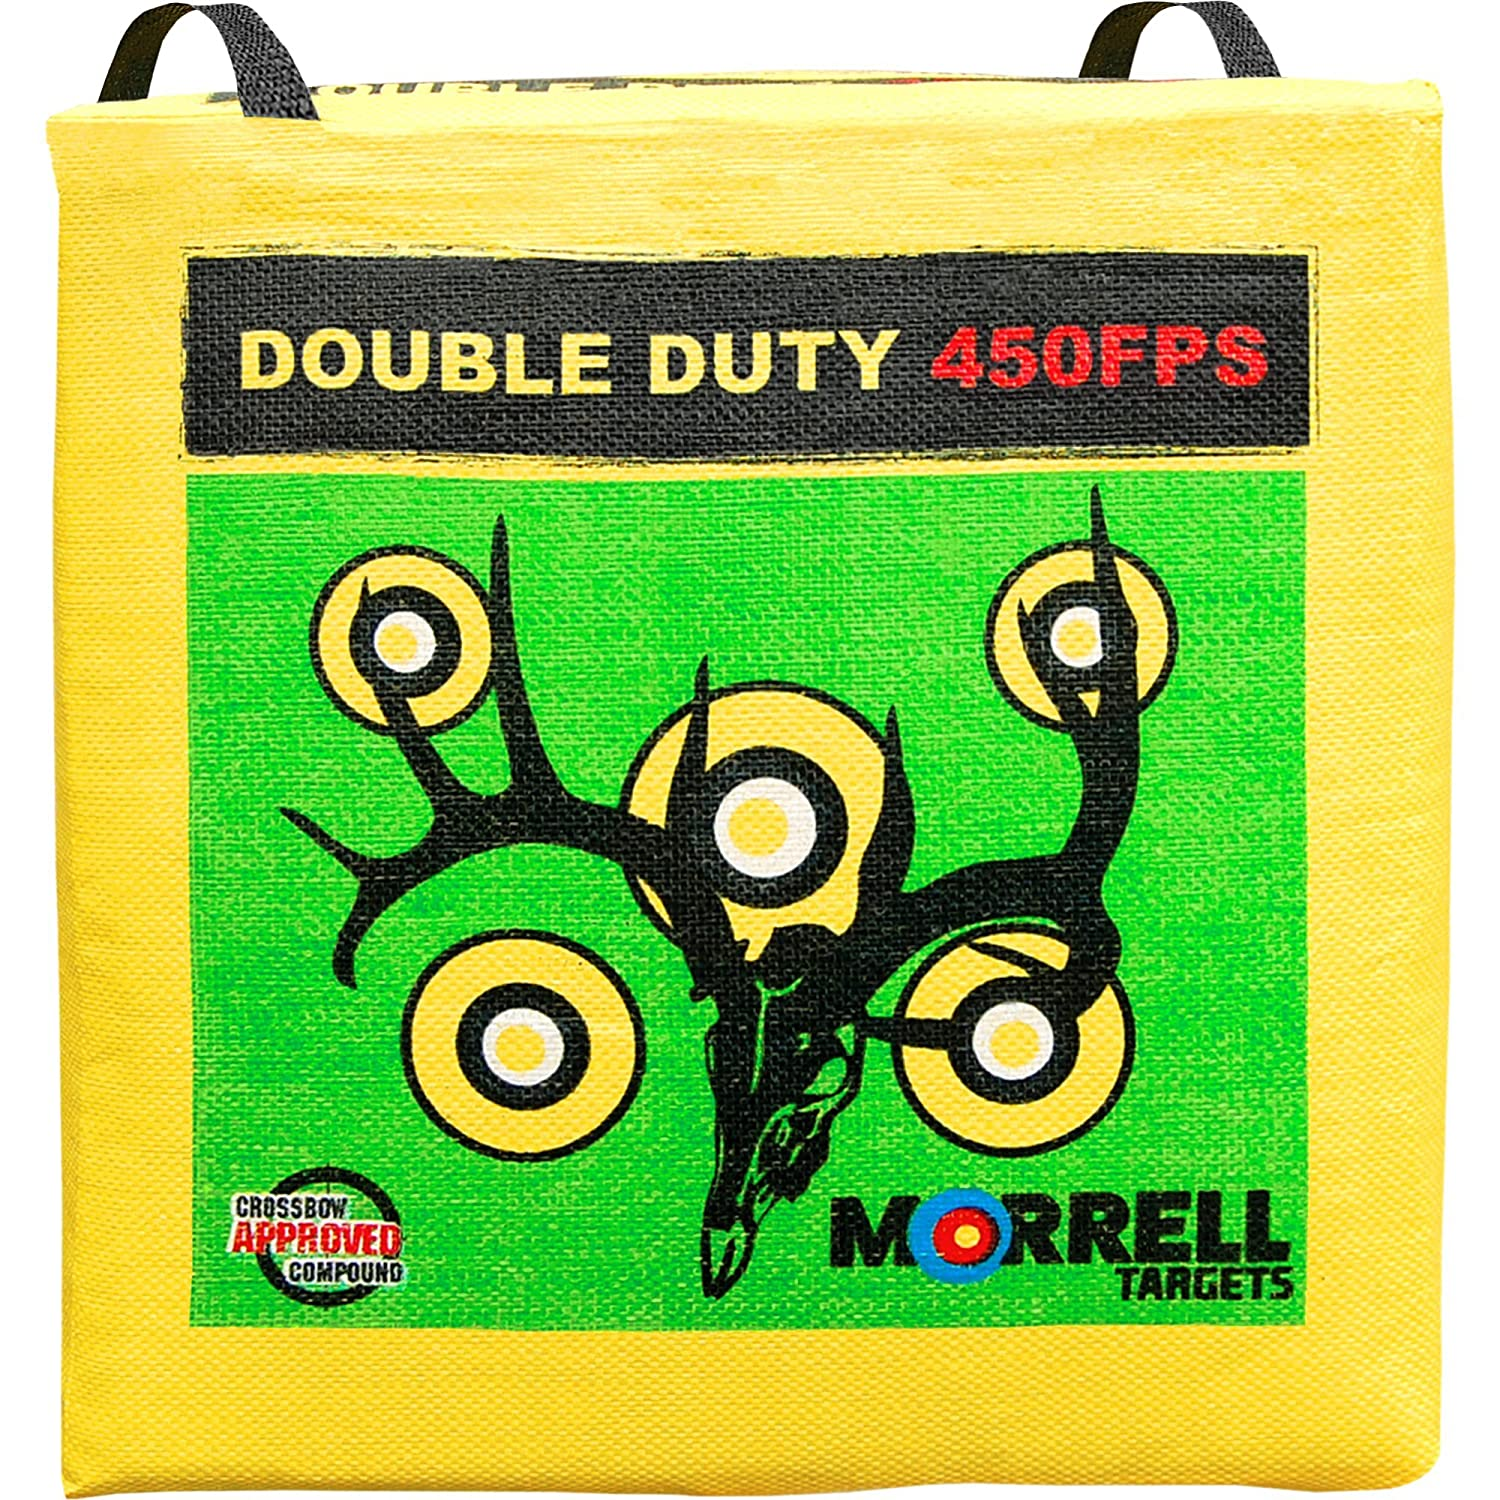 for Crossbows Compounds Traditional Bows and Airbows Morrell Double Duty 450FPS Field Point Bag Archery Target